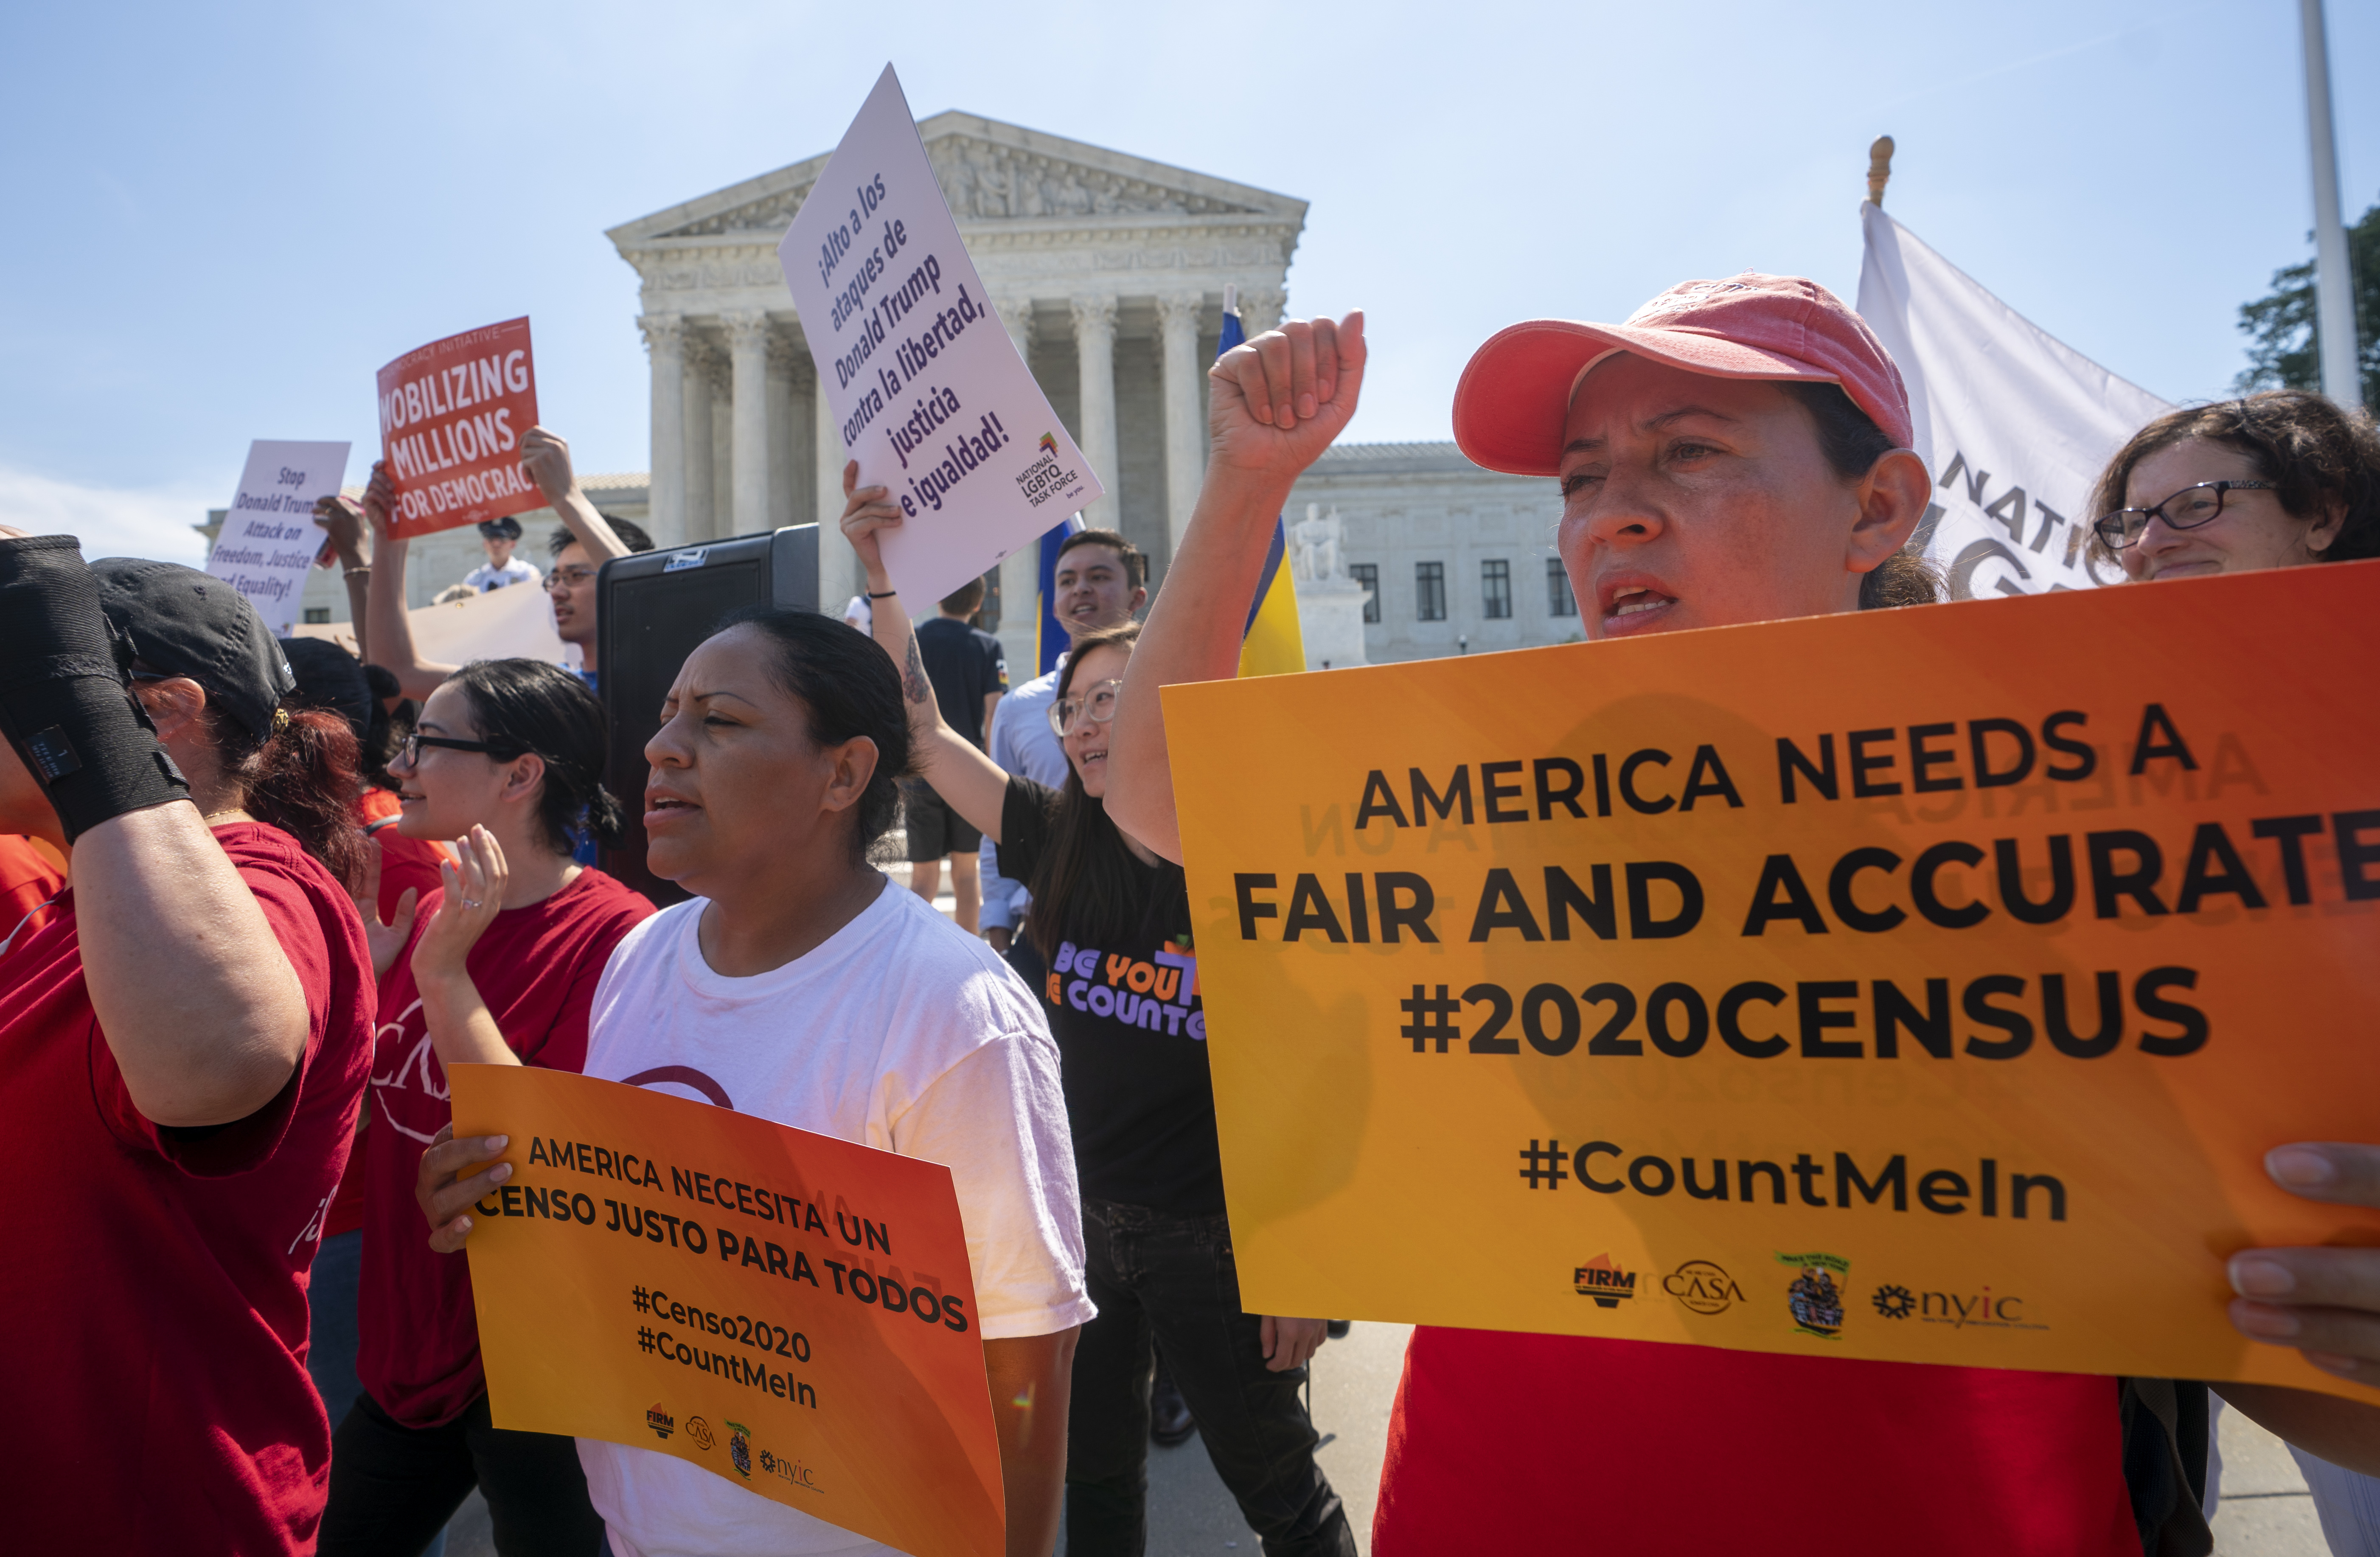 Alabama forges on in Census battle after Trump retreats on